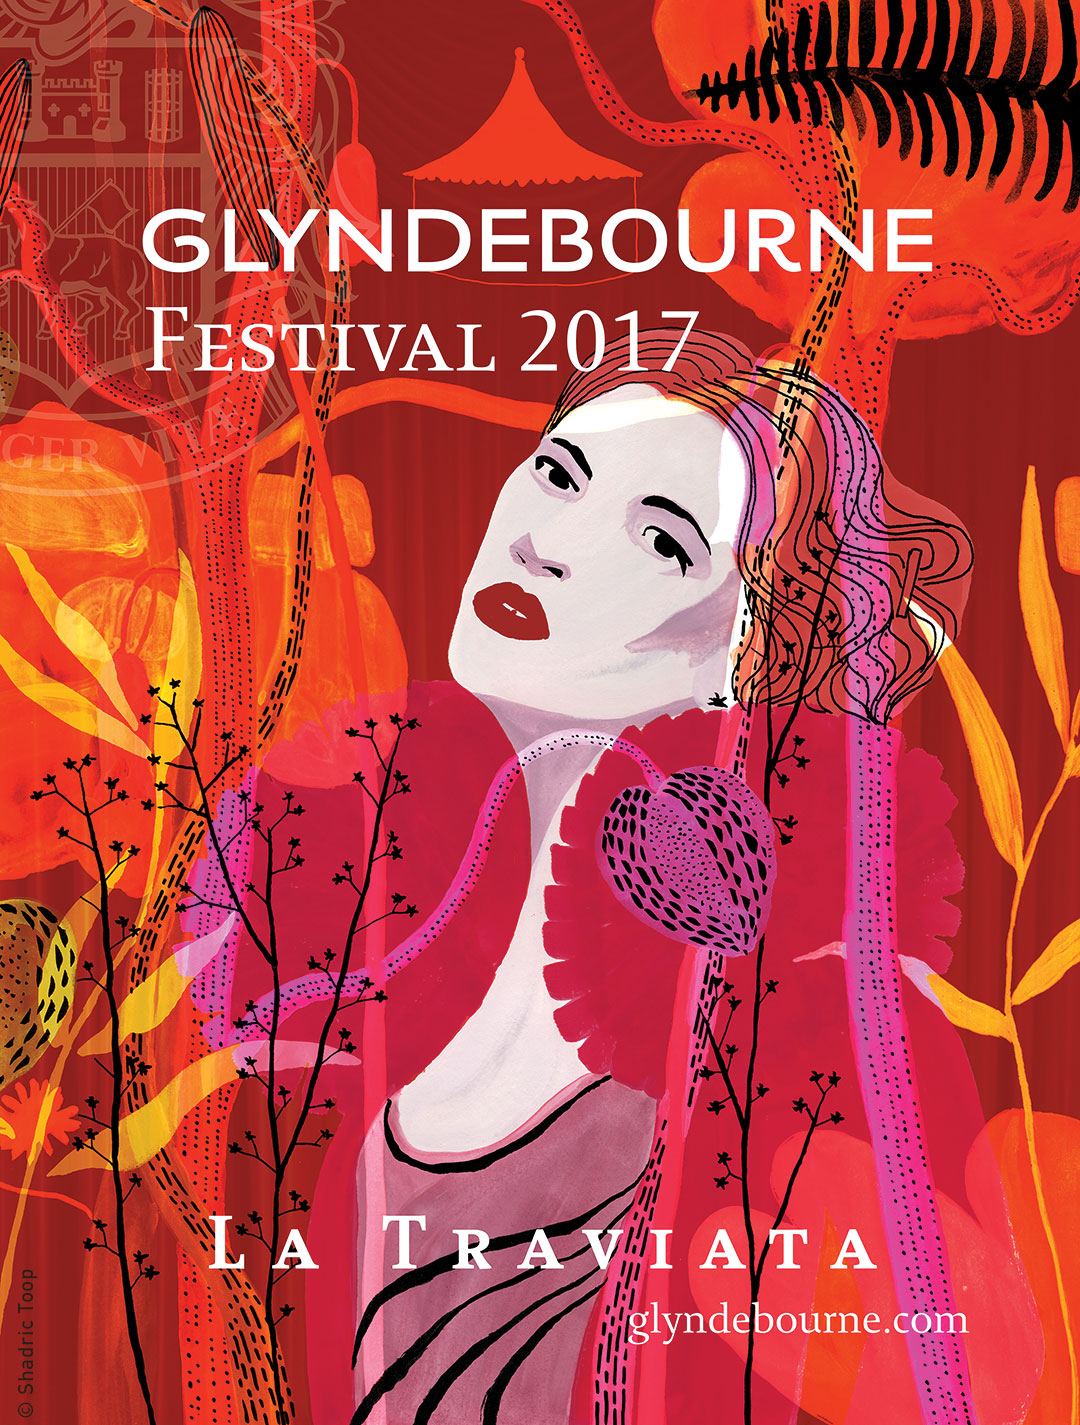 An illustrated poster for Glyndebourne Festival featuring Violetta, the main character in the Verdi opera La Traviata, in a abstract design of plants which represent the summer gardens at Glyndebourne - work by Shadric Toop